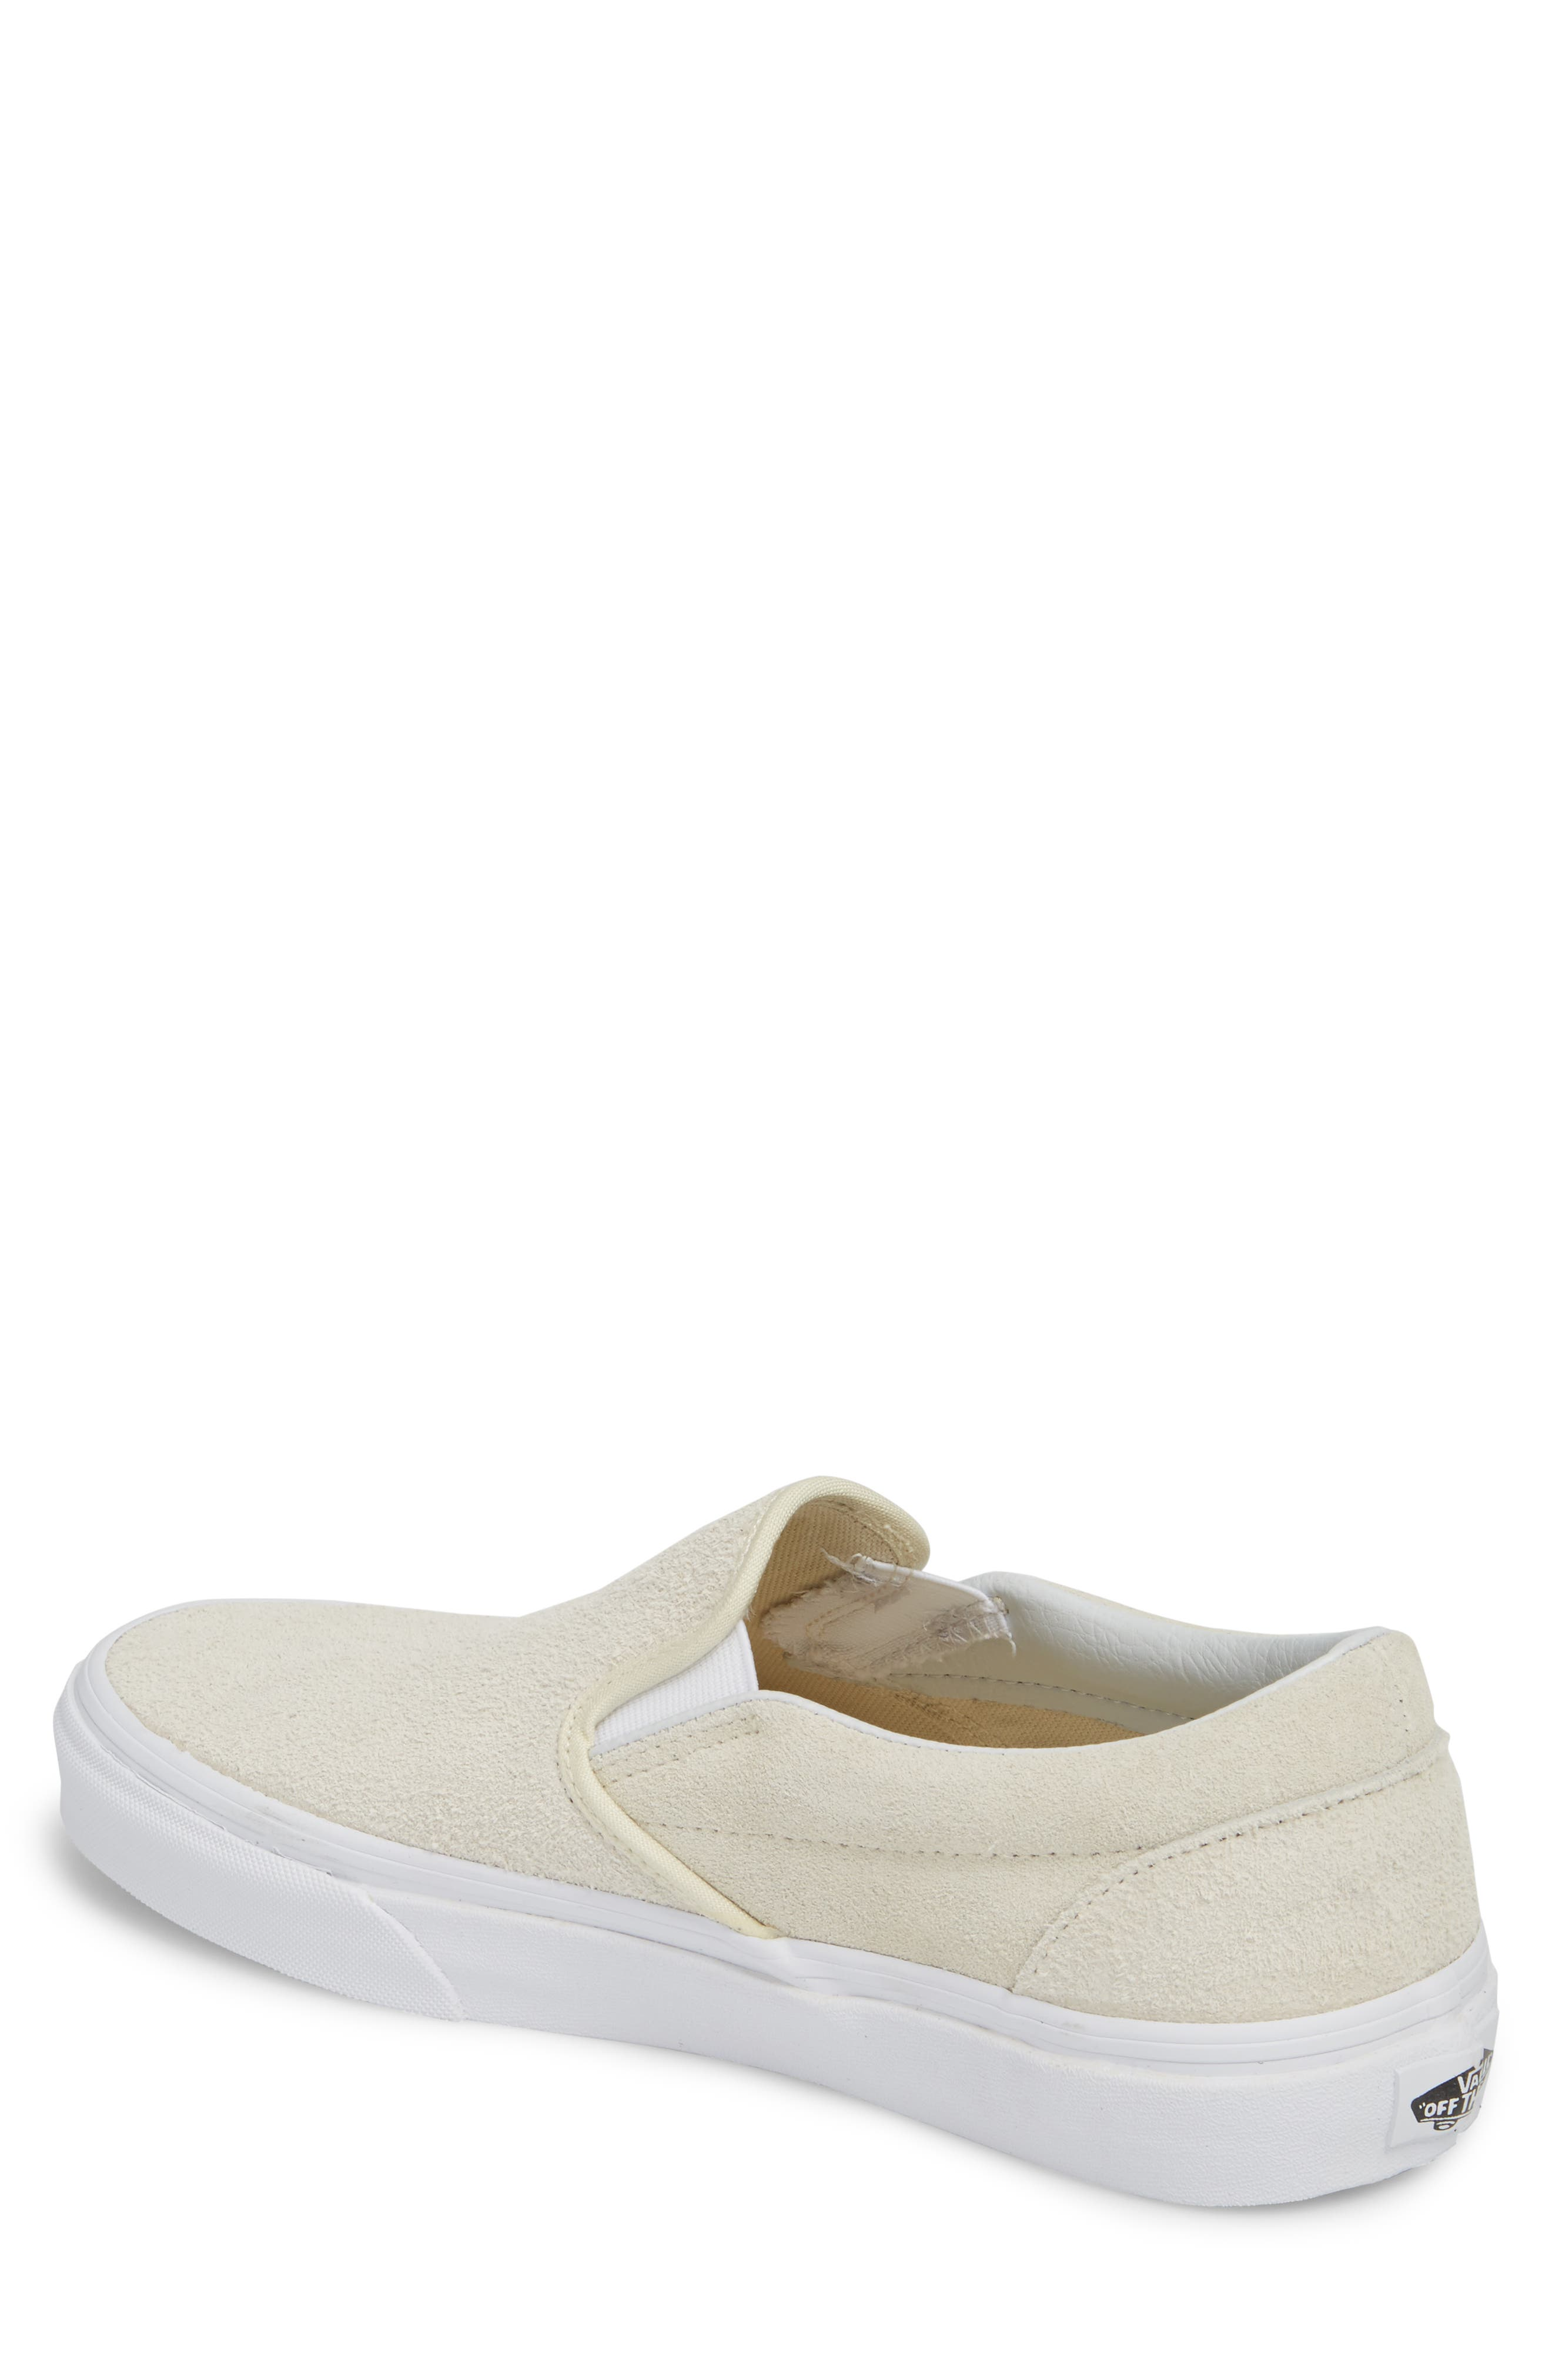 Classic Hairy Suede Slip-On Sneaker,                             Alternate thumbnail 2, color,                             Turtledove Leather